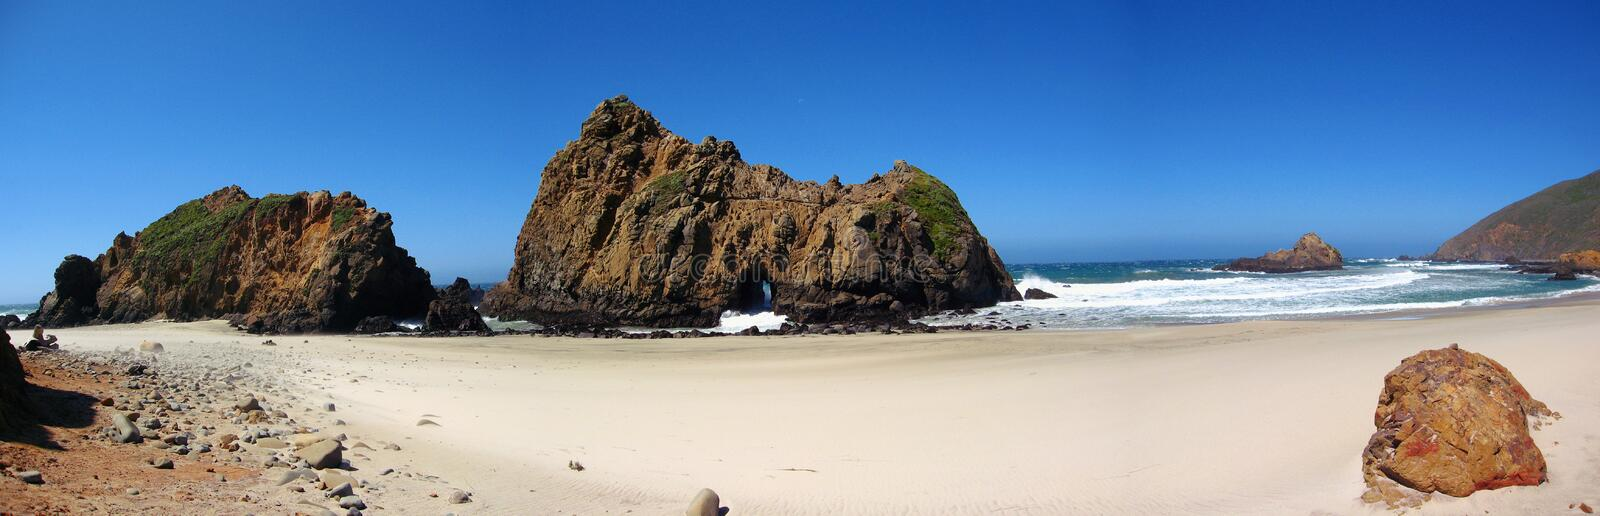 Landscape Panorama of Pacific Coast with Keyhole Rock at Pfeiffer Beach State Park, Big Sur, California, United States. Keyhole Rock is a stunning natural rock royalty free stock image